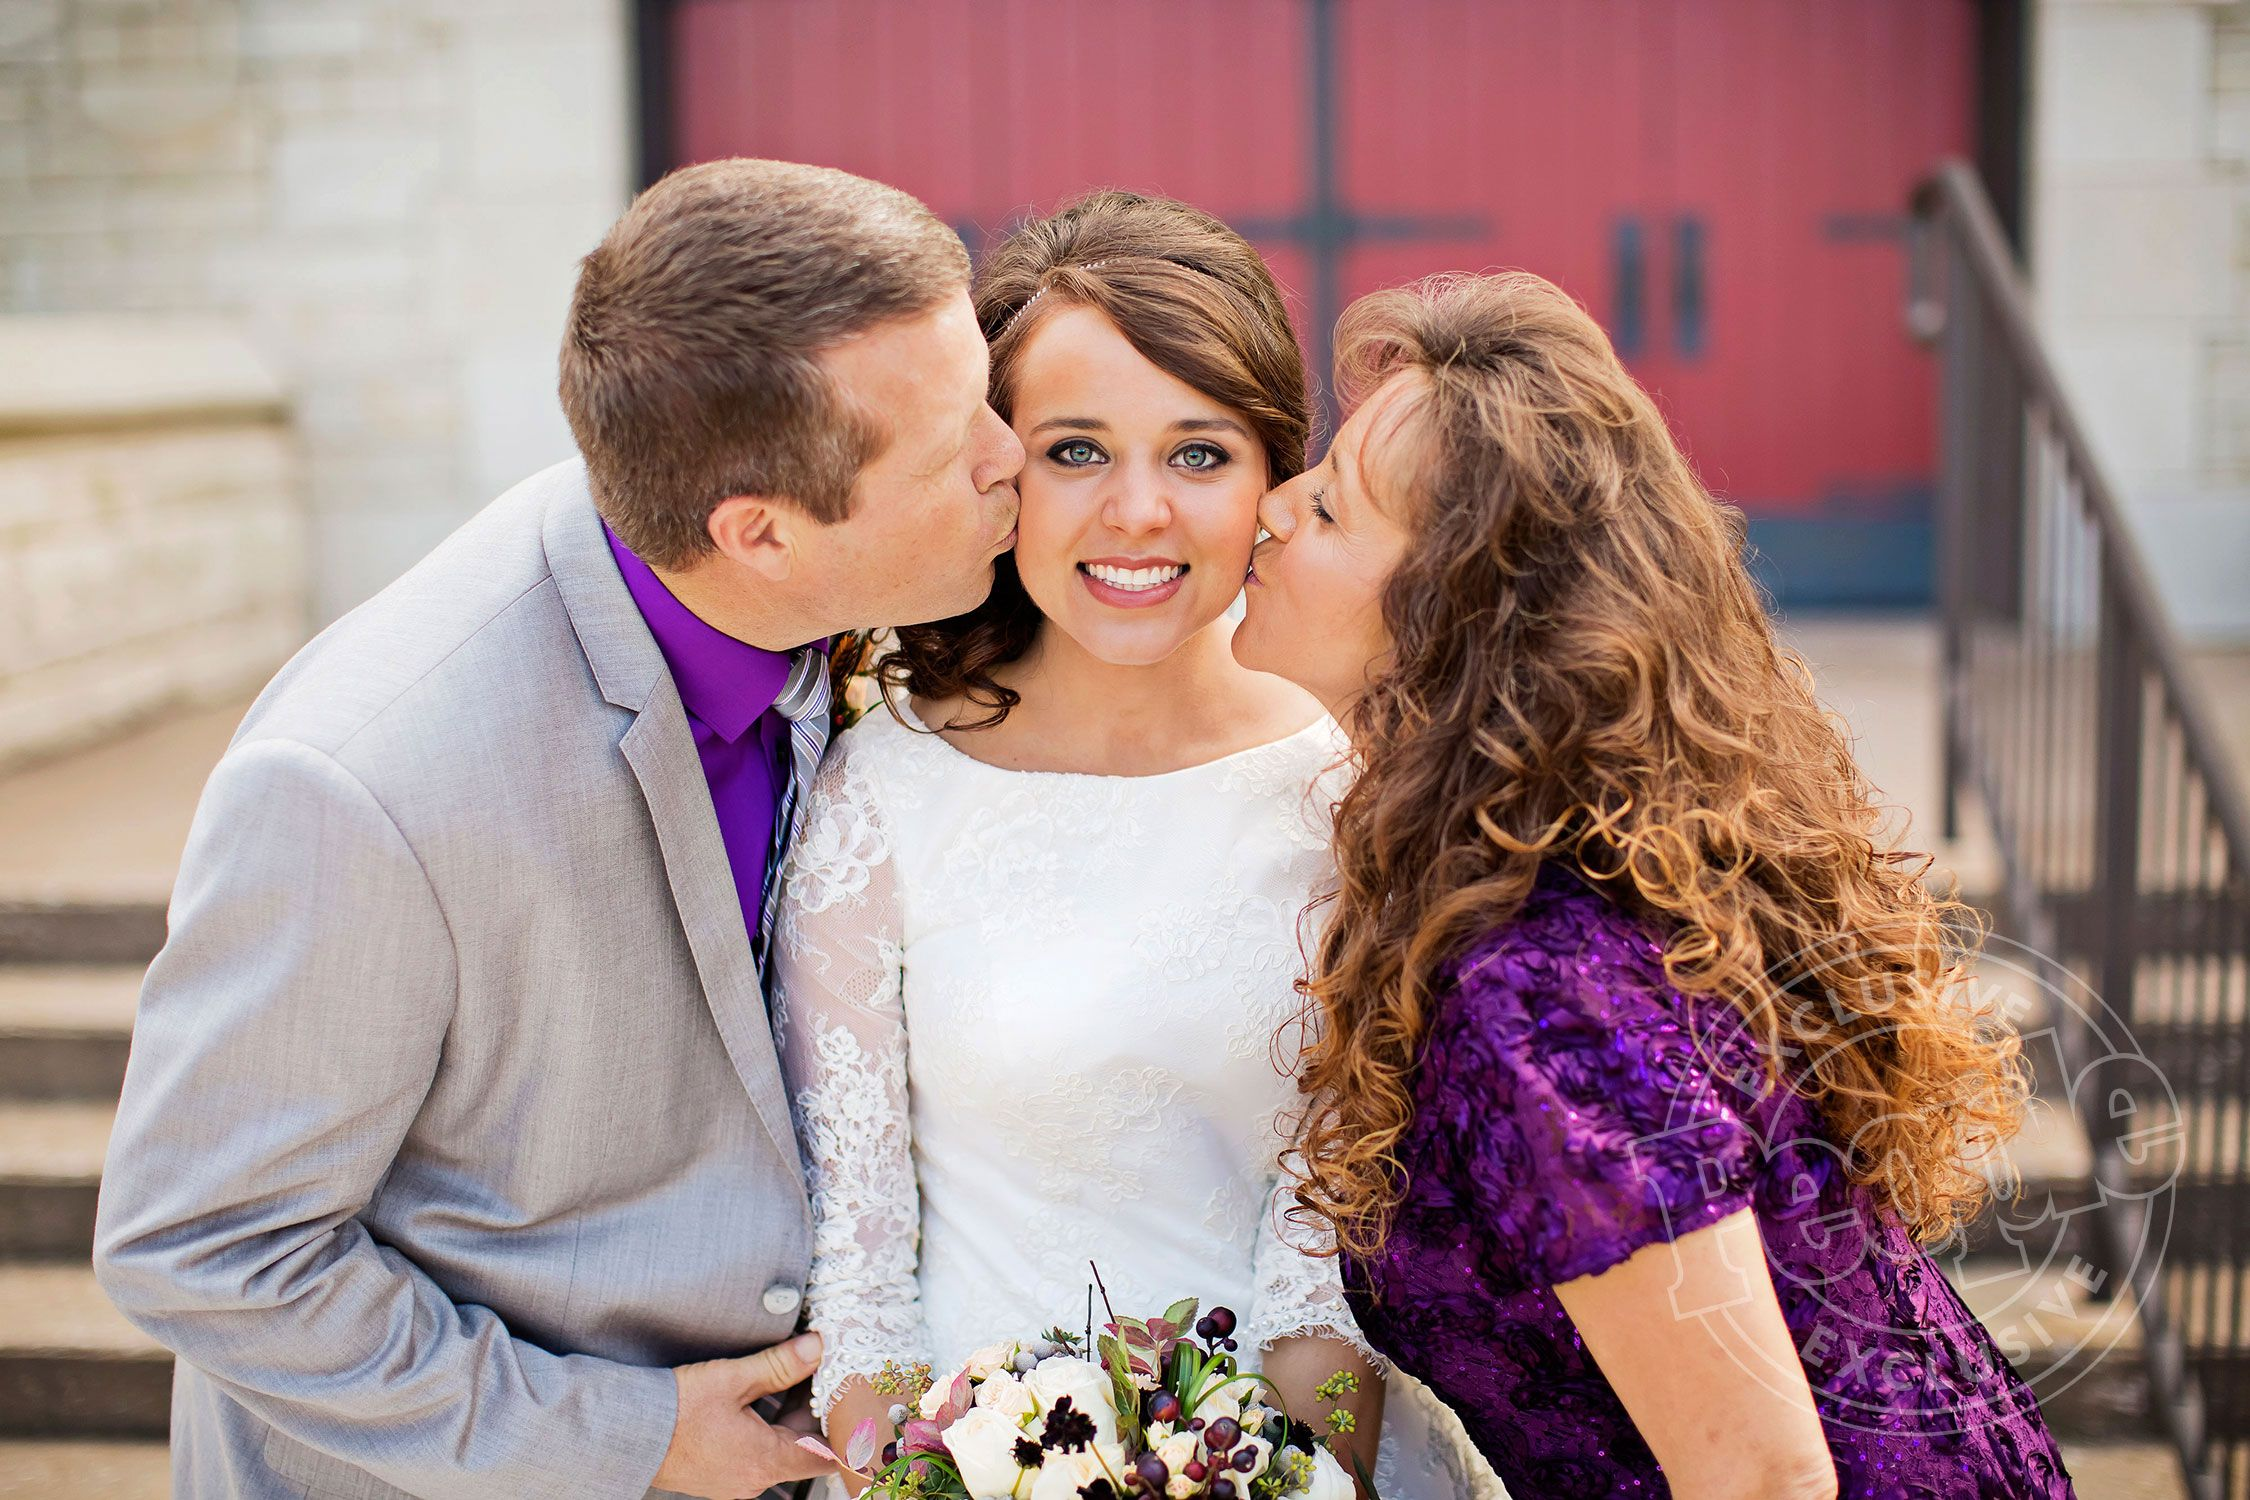 Jill duggar wedding dress  From uNakedu Vanilla Cake to the First Kiss All the Details of